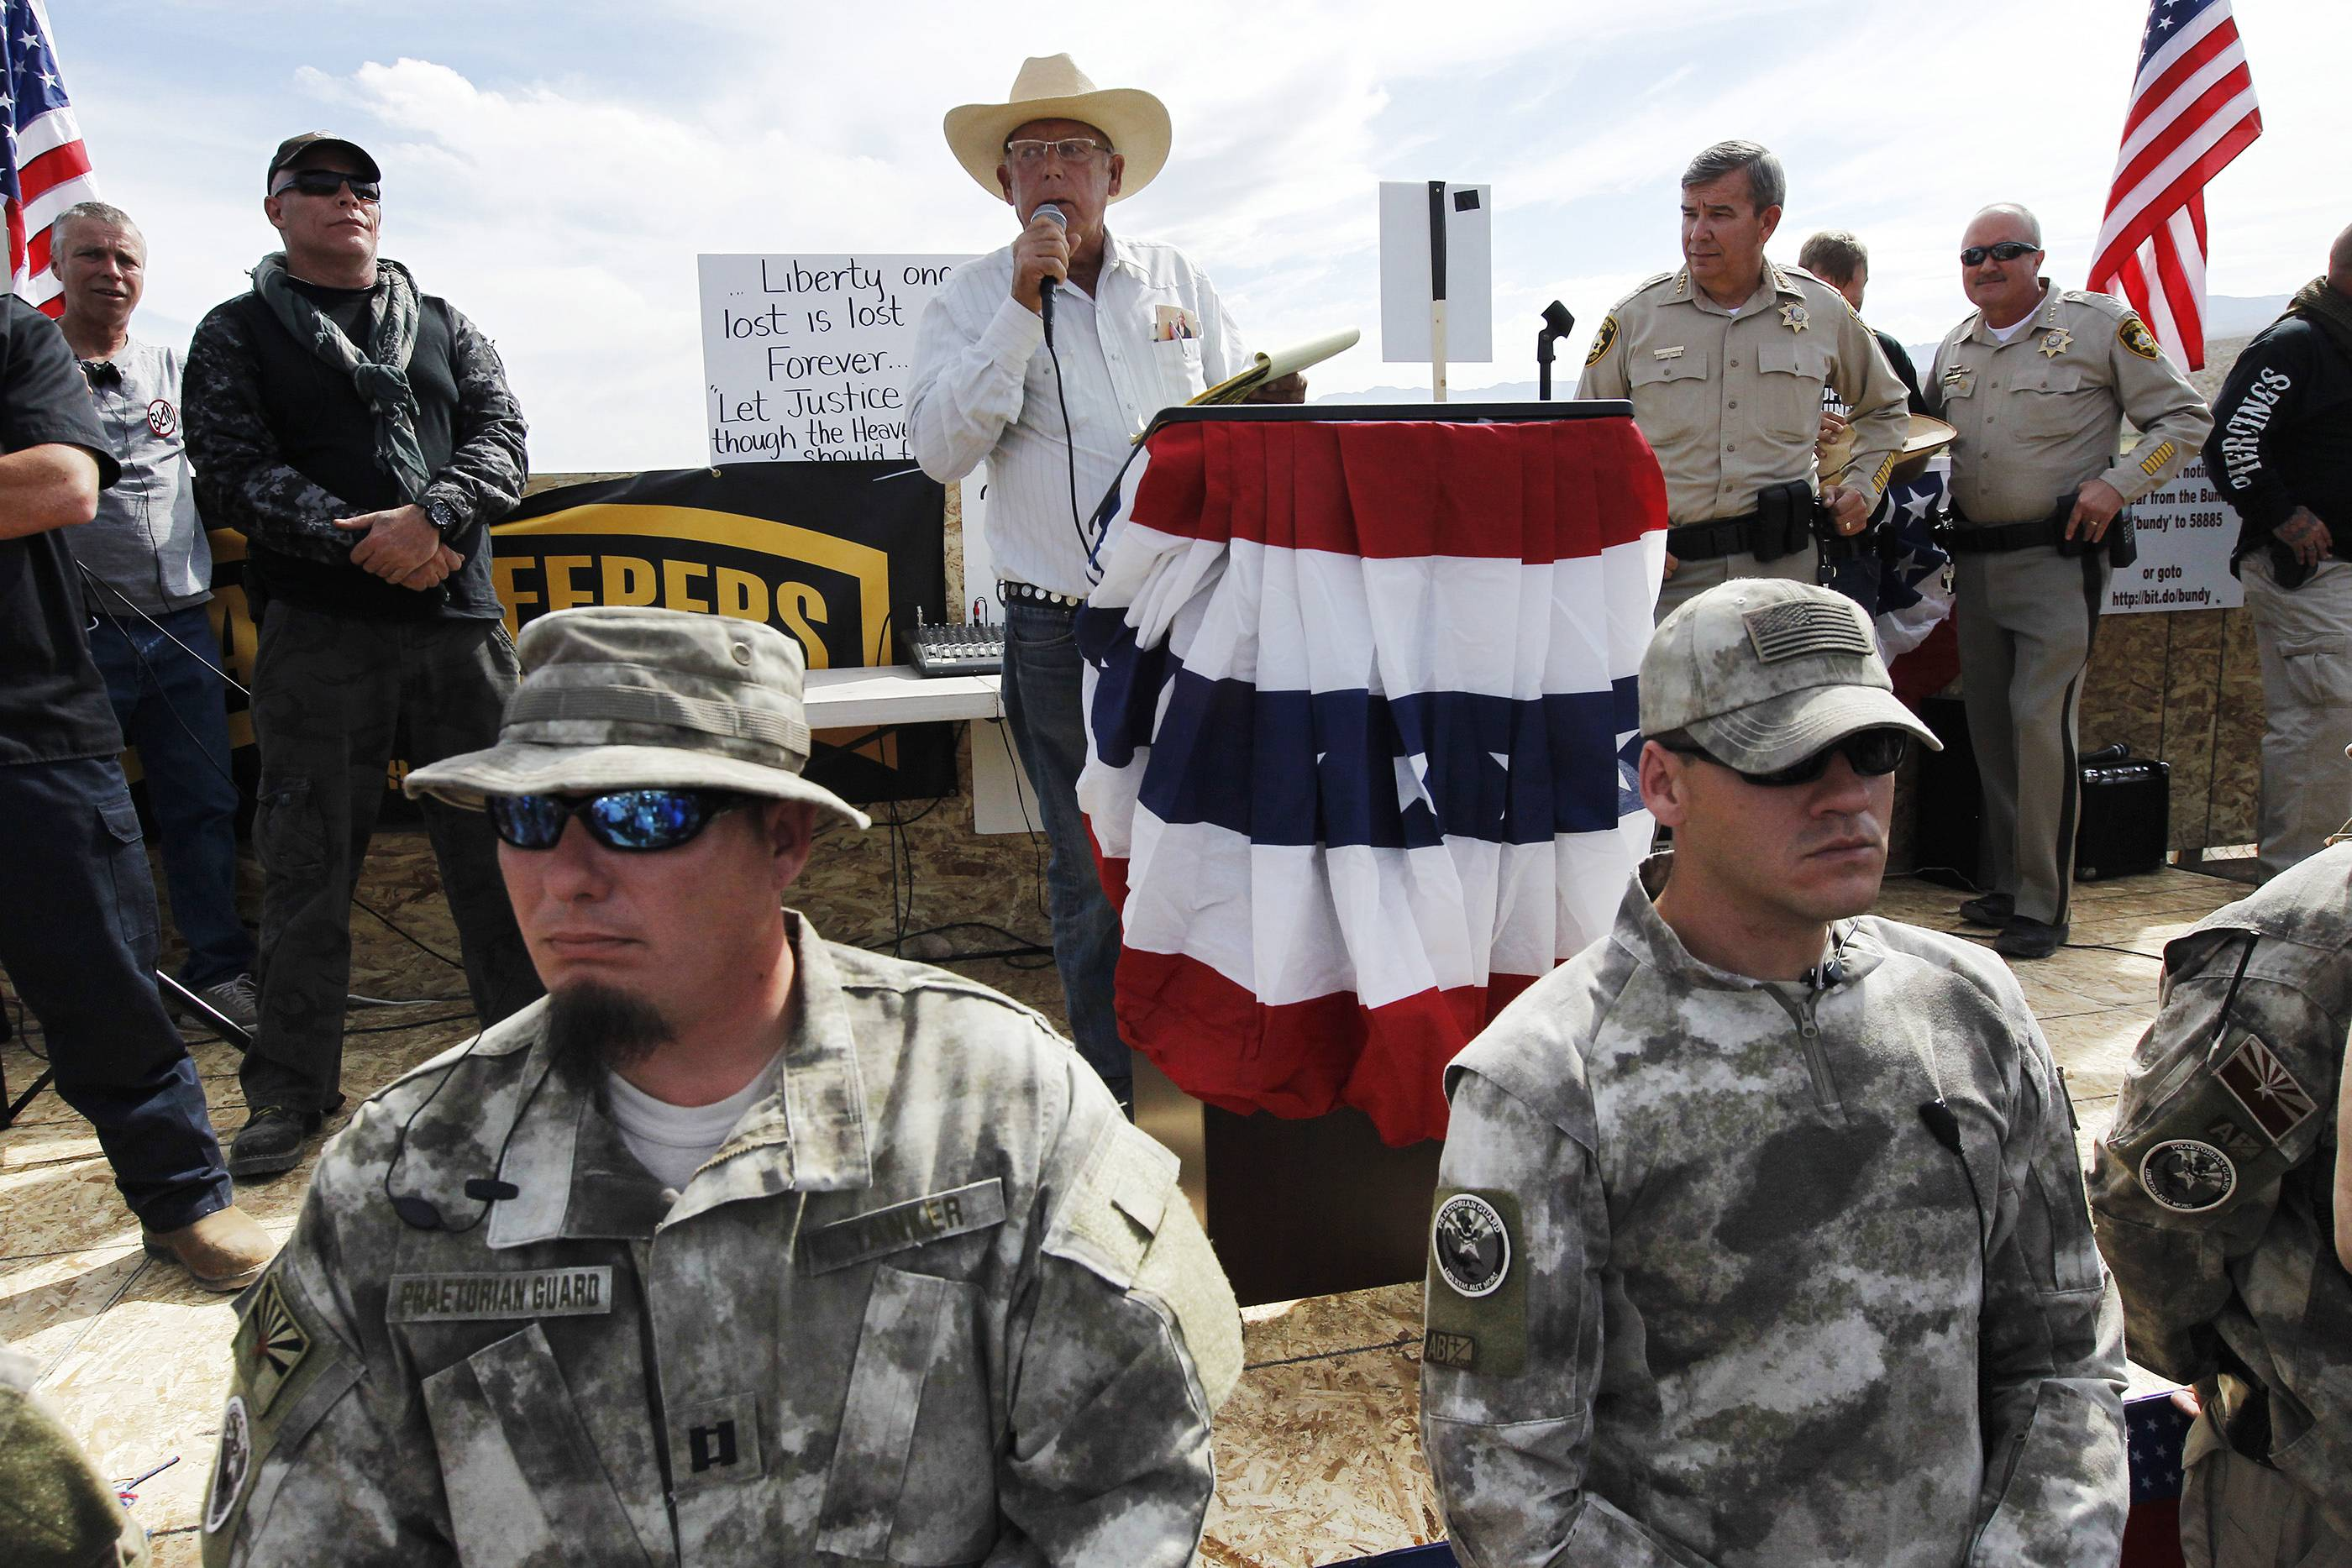 Rancher Cliven Bundy, center, addresses his supporters along side Clark County Sheriff Doug Gillespie, right, while being guarded by self-described militia members in the foreground.